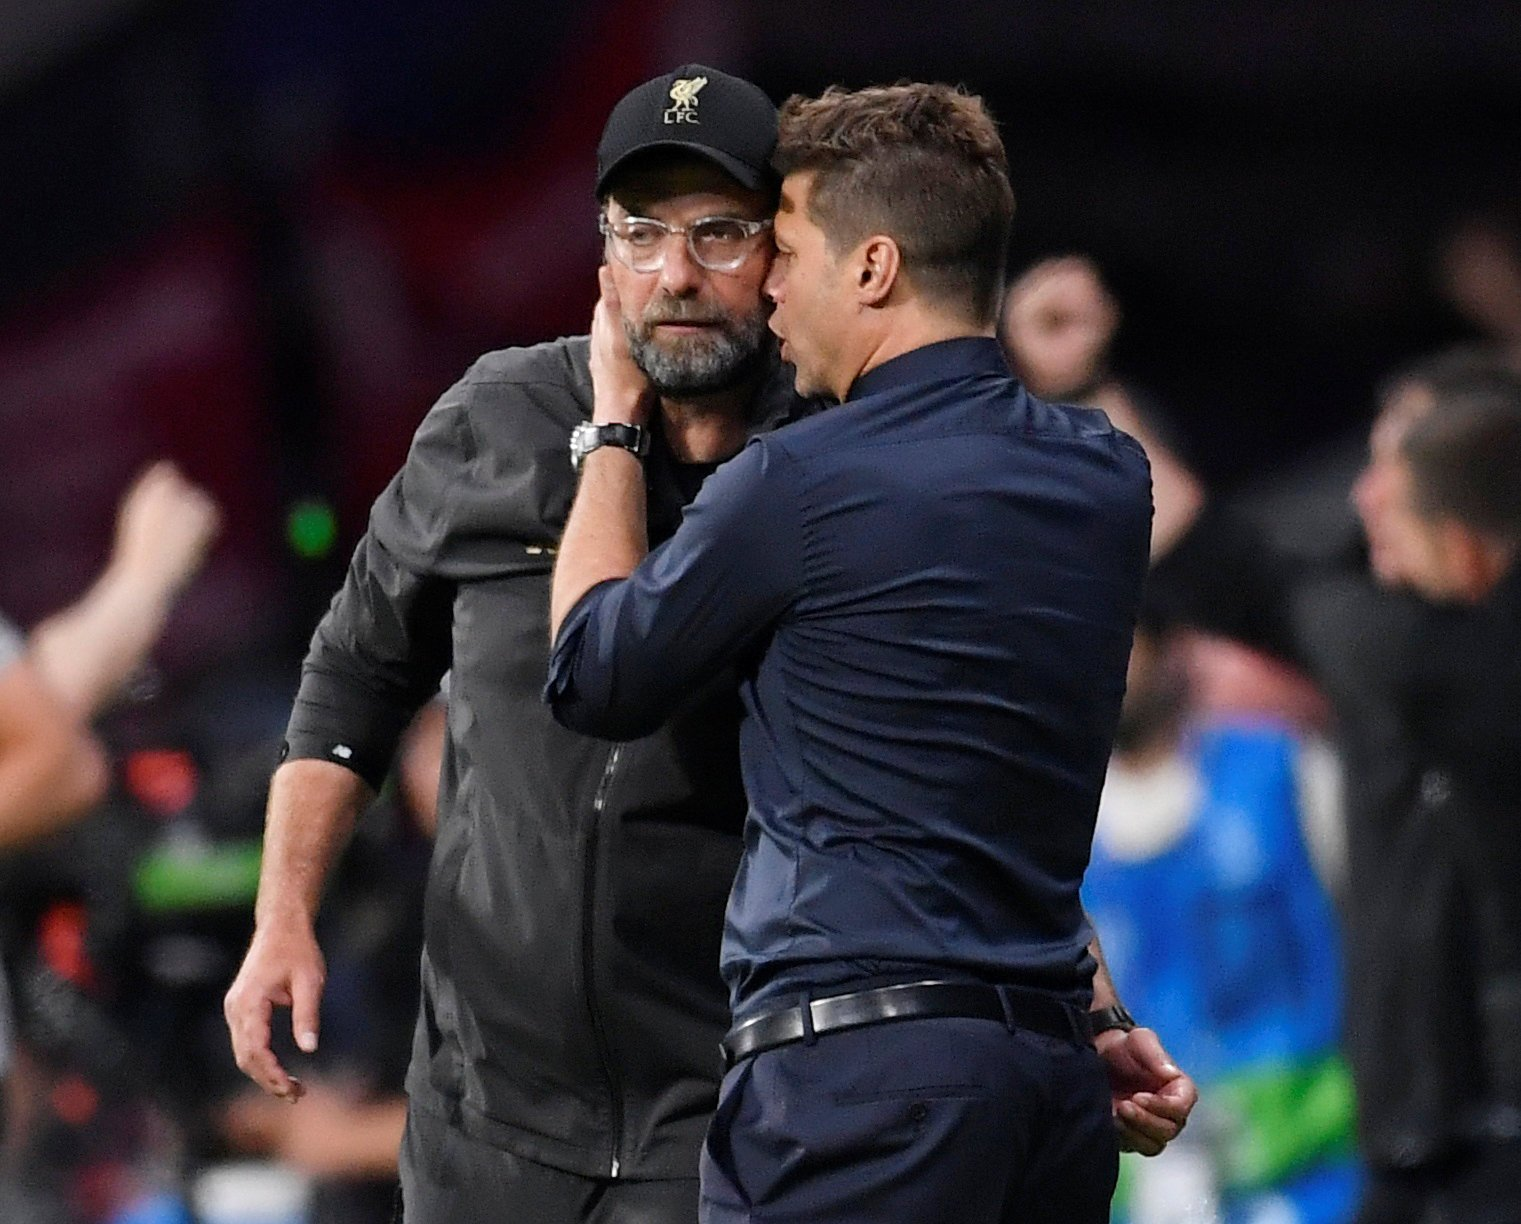 Mauricio Pochettino and Jurgen Klopp on the touchline - Champions League final: 5 key factors that made Spurs vs Liverpool an inevitably terrible game